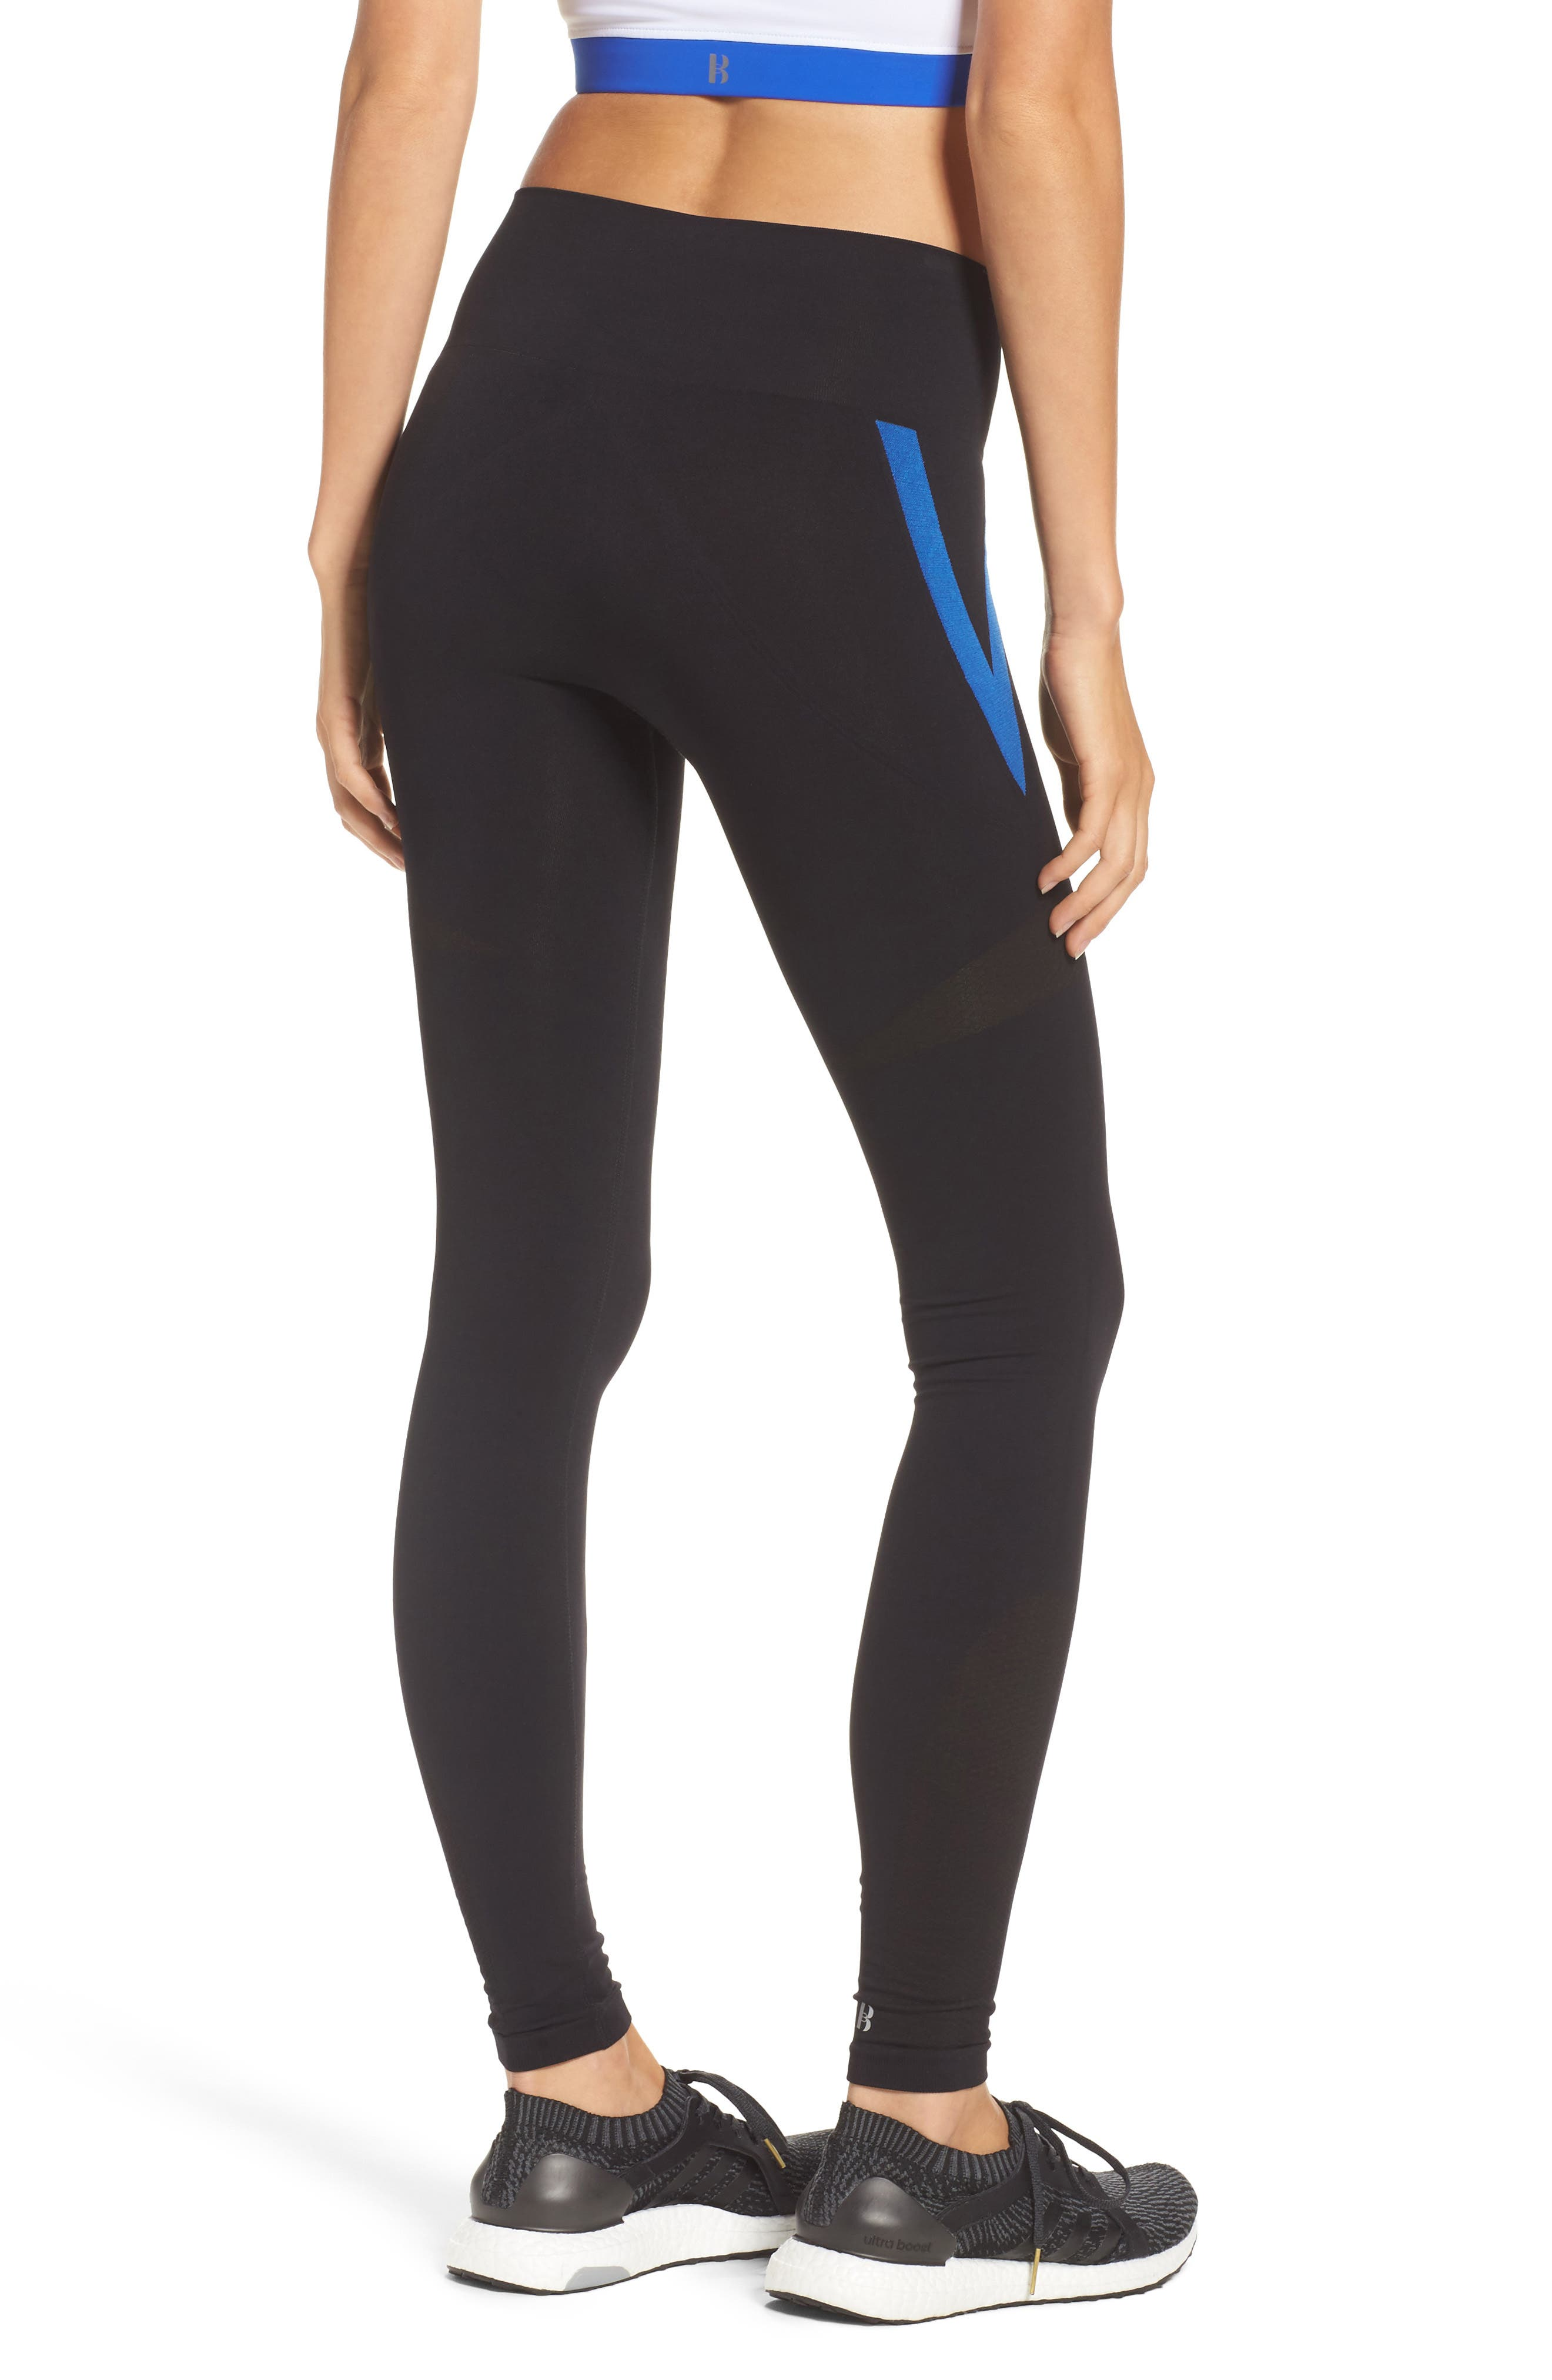 BoomBoom Athletica Leggings,                             Alternate thumbnail 2, color,                             Black With Blue